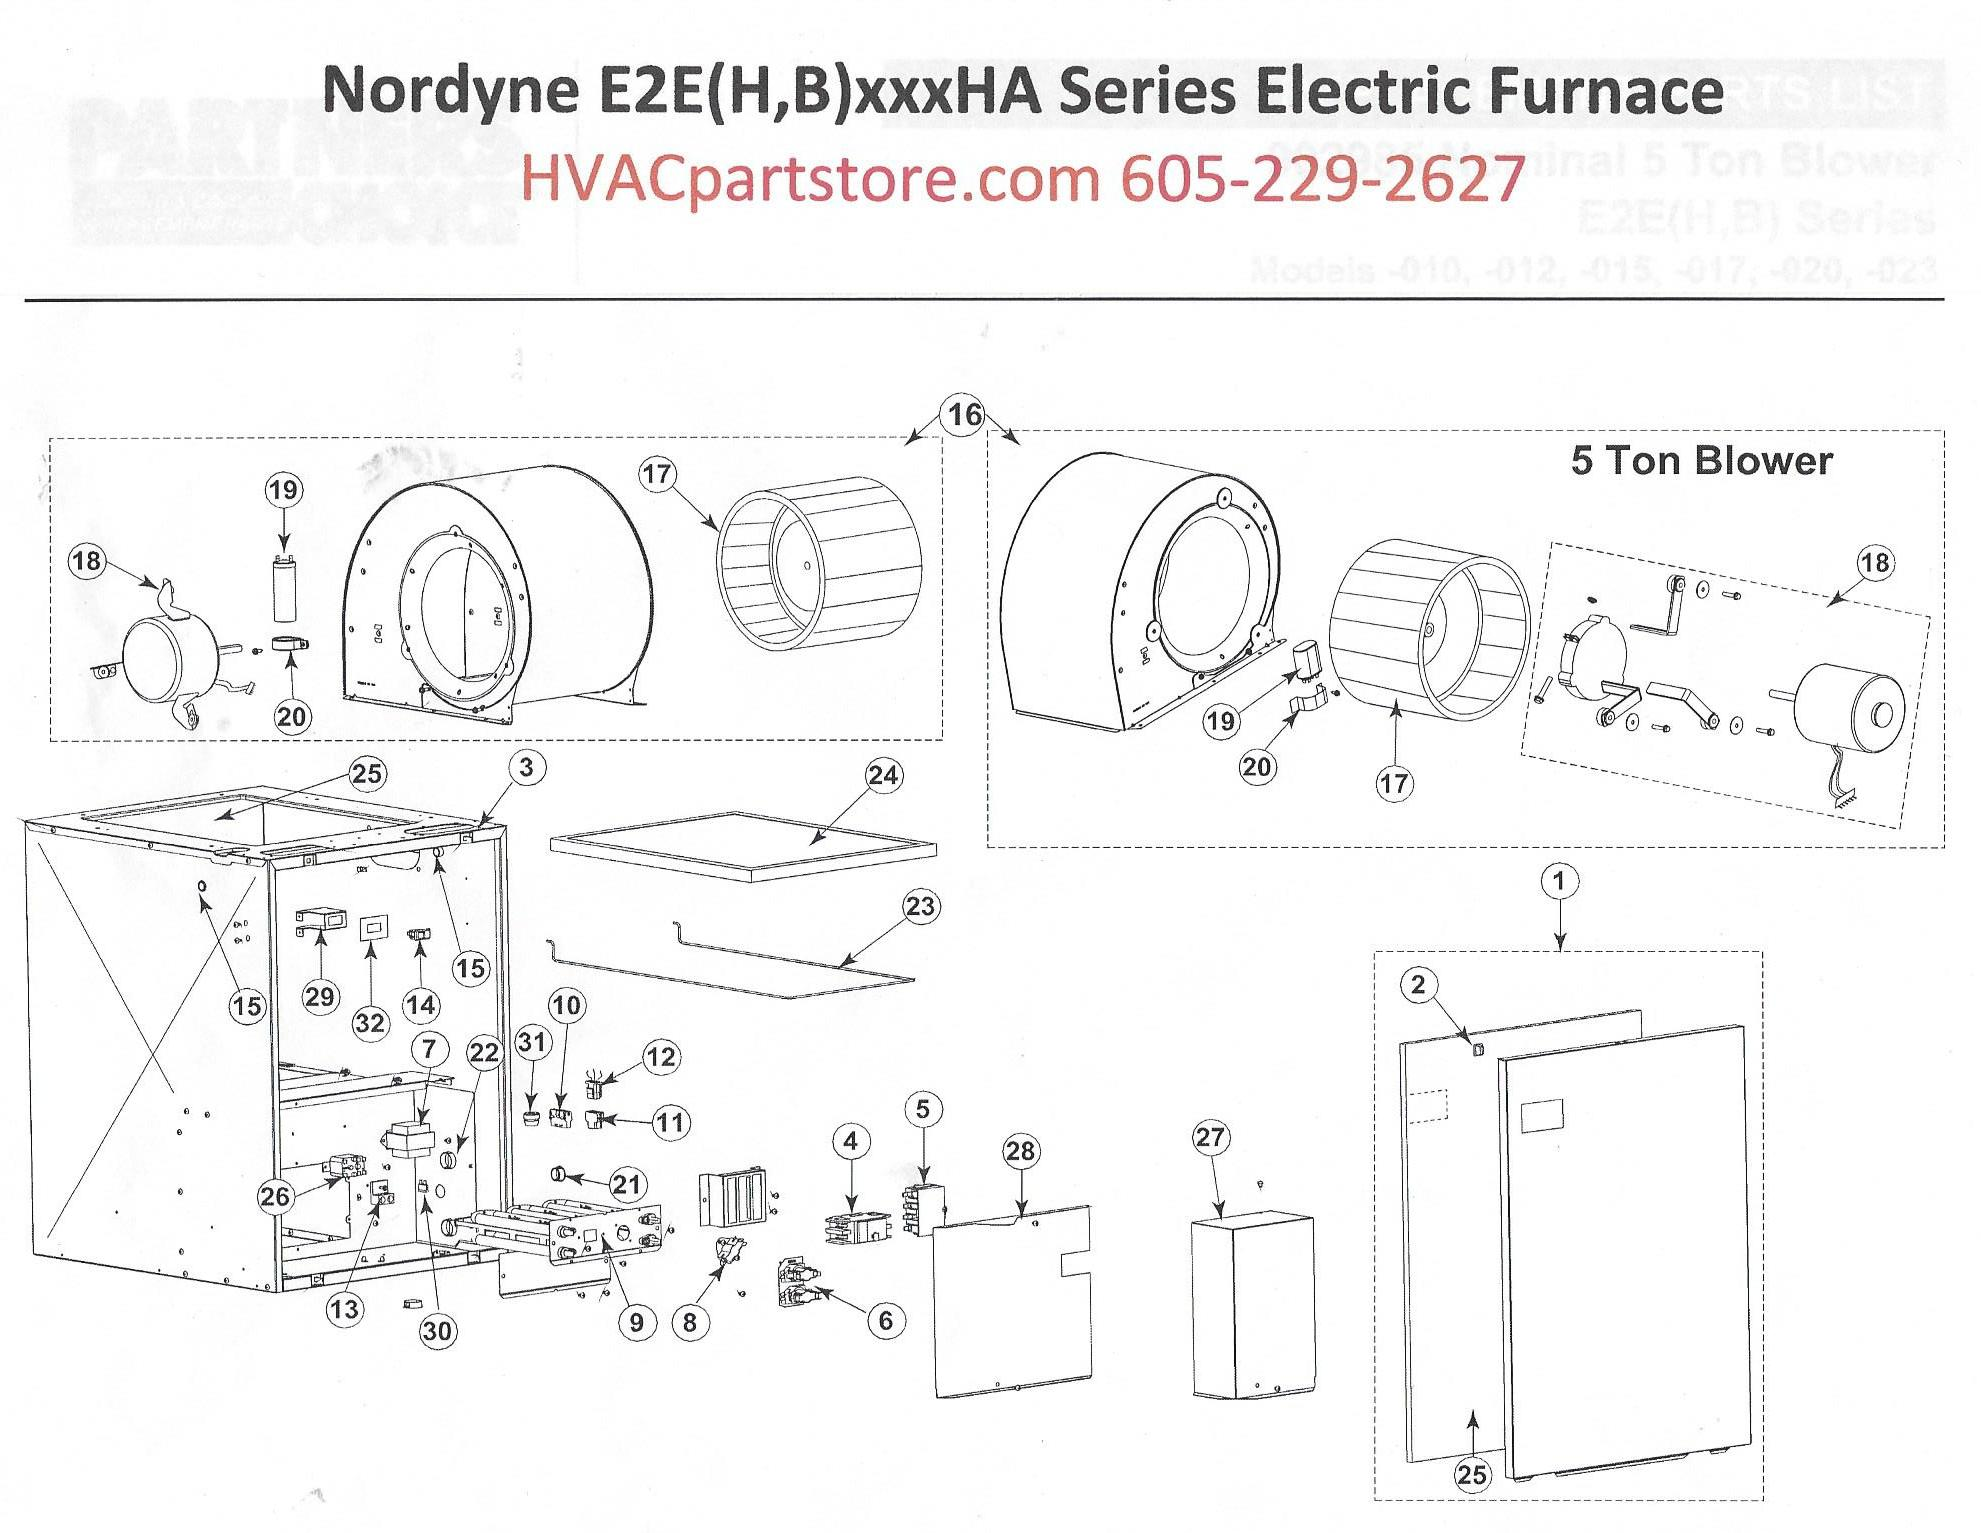 E2HADiagram_49ce4556 d54a 492f b872 5576d01fd58c?12850817849207588219 e2eb015ha nordyne electric furnace parts hvacpartstore nordyne model e2eb-015ha wiring diagram at alyssarenee.co